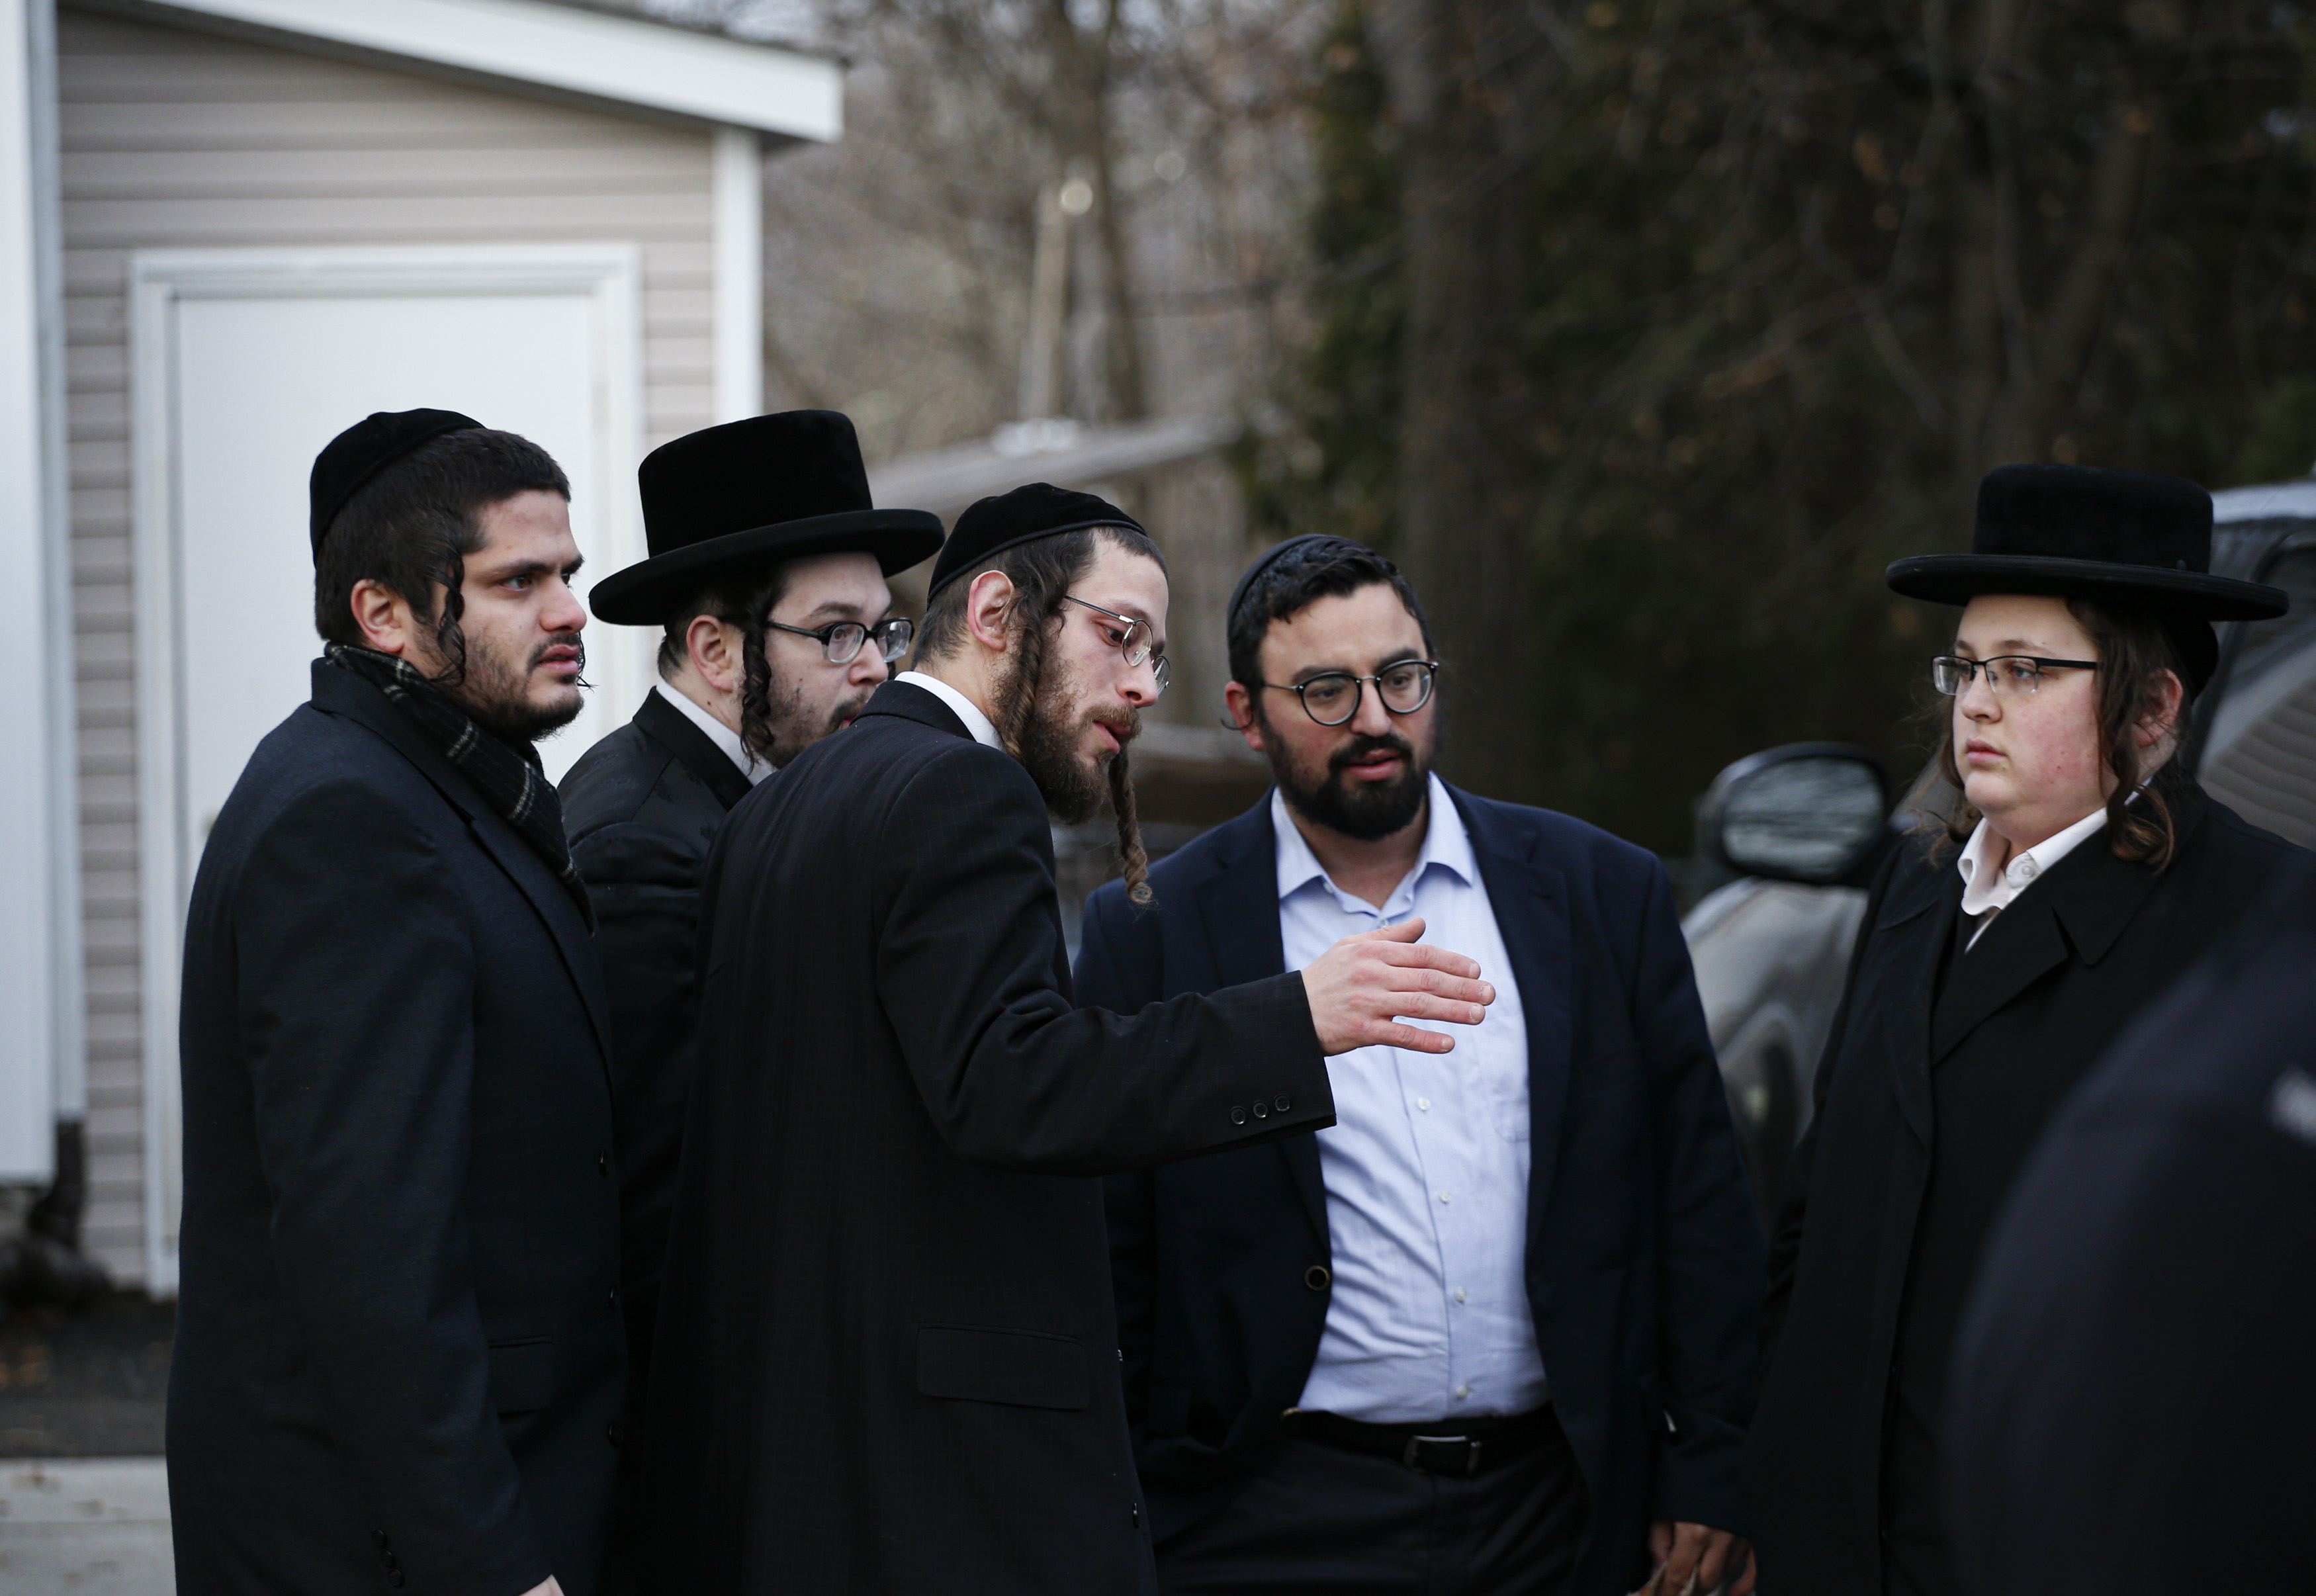 Men in Orthodox Jewish attire stand outside a house and talk to one another.